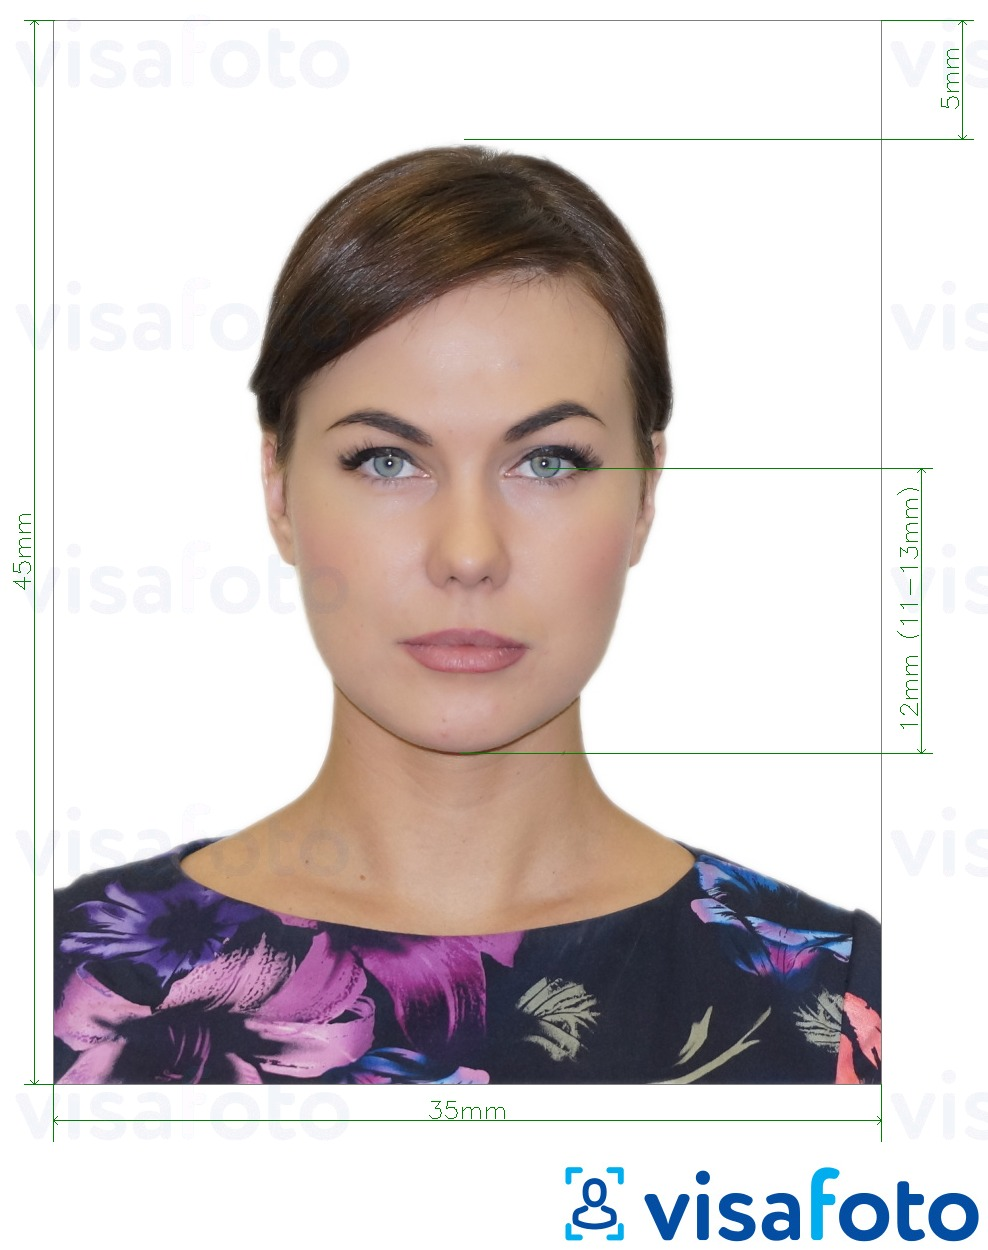 Example of photo for Russia Passport (eyes to bottom of chin 12 mm) with exact size specification